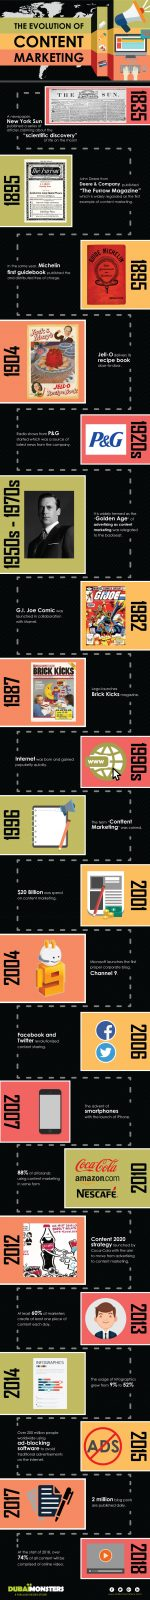 The-Evolution-of-Content-Marketing